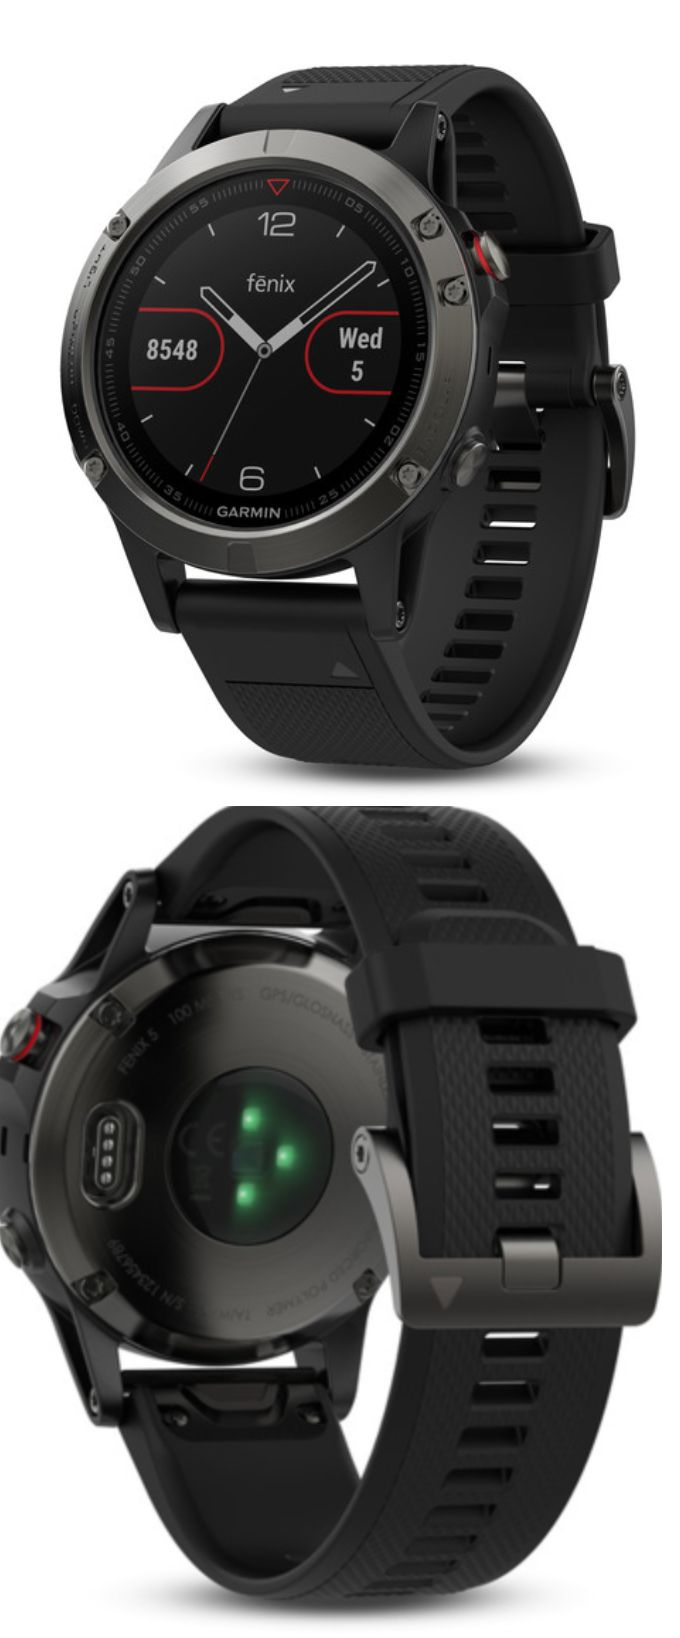 GPS and Running Watches 75230: New Garmin Fenix 5 Multisport Gps Watch - Black Band - 010-01688-00 - In Stock -> BUY IT NOW ONLY: $609.99 on eBay!